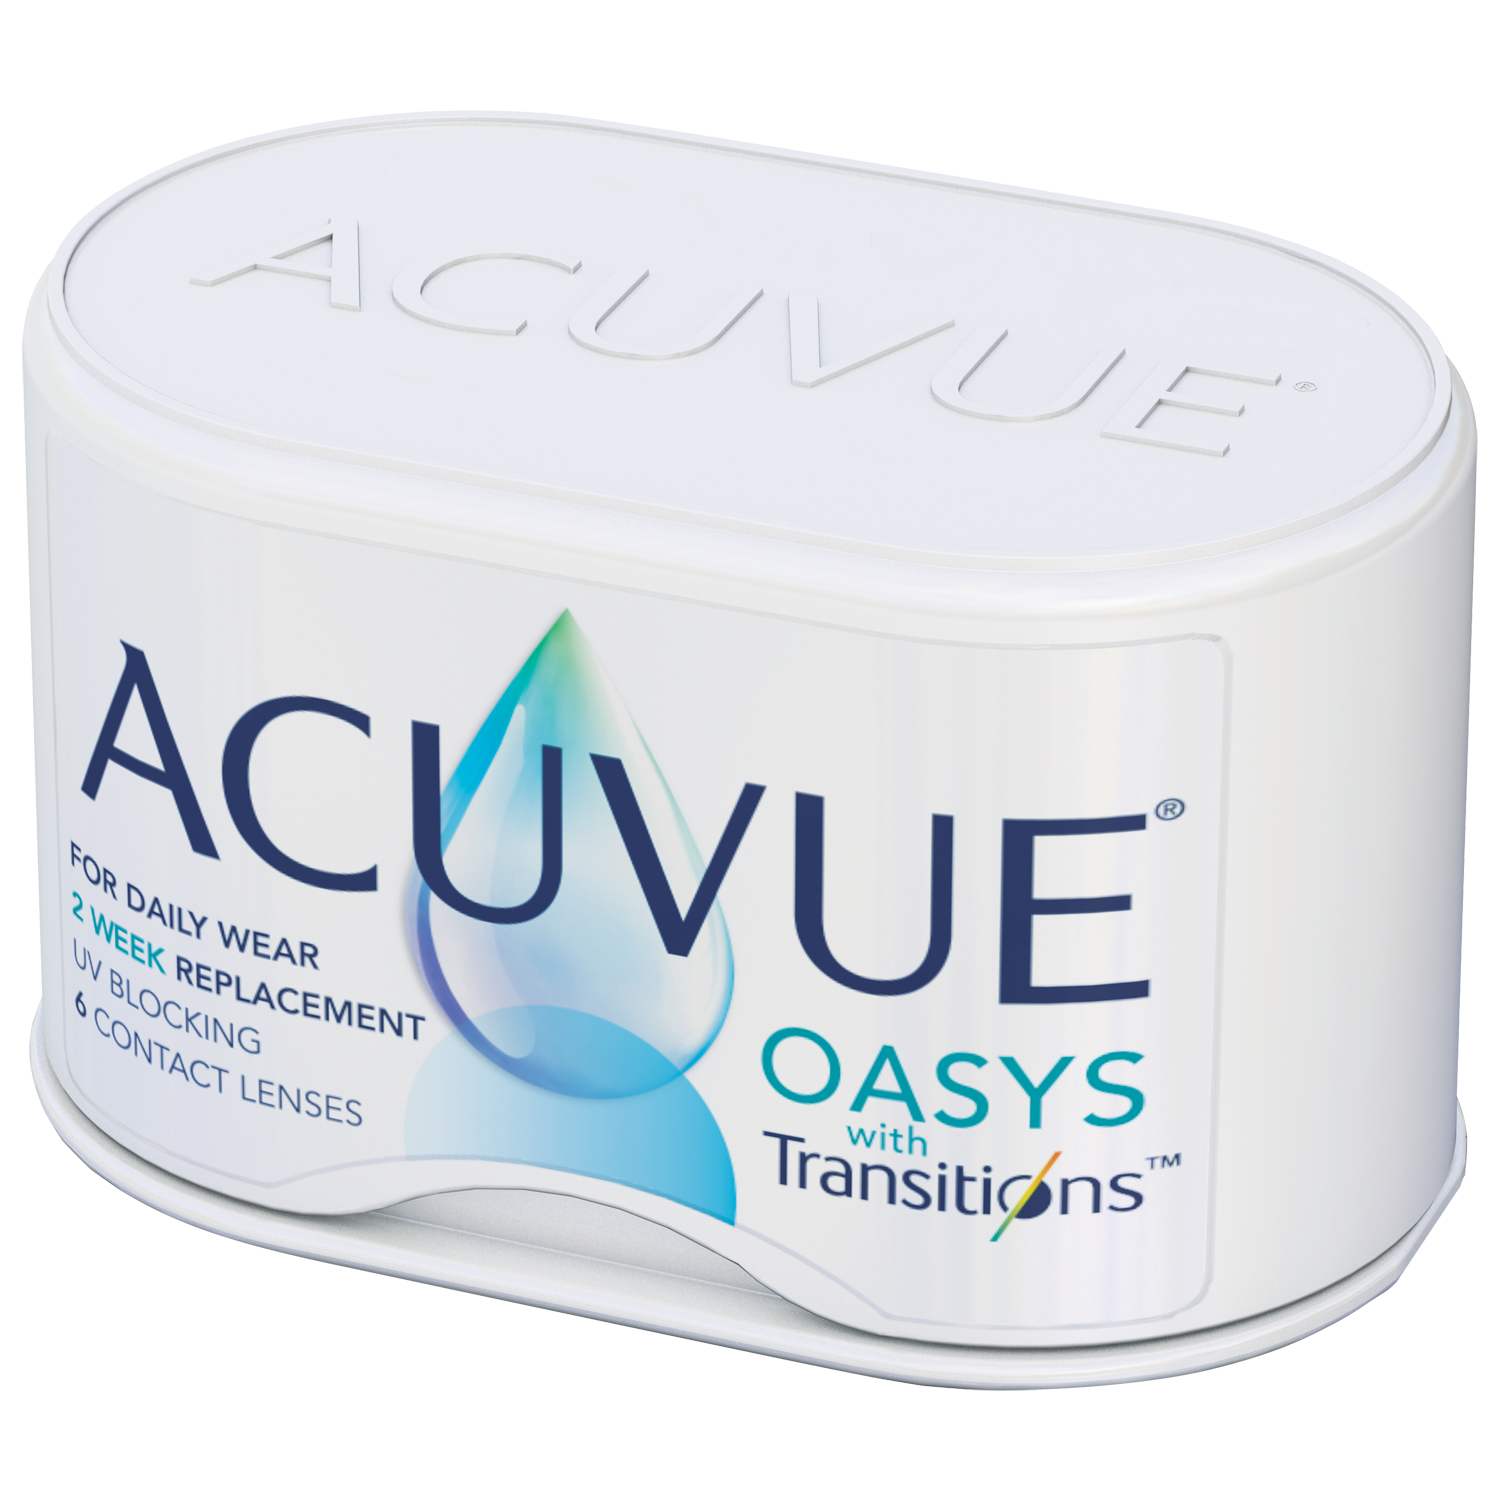 ACUVUE OASYS® with Transitions